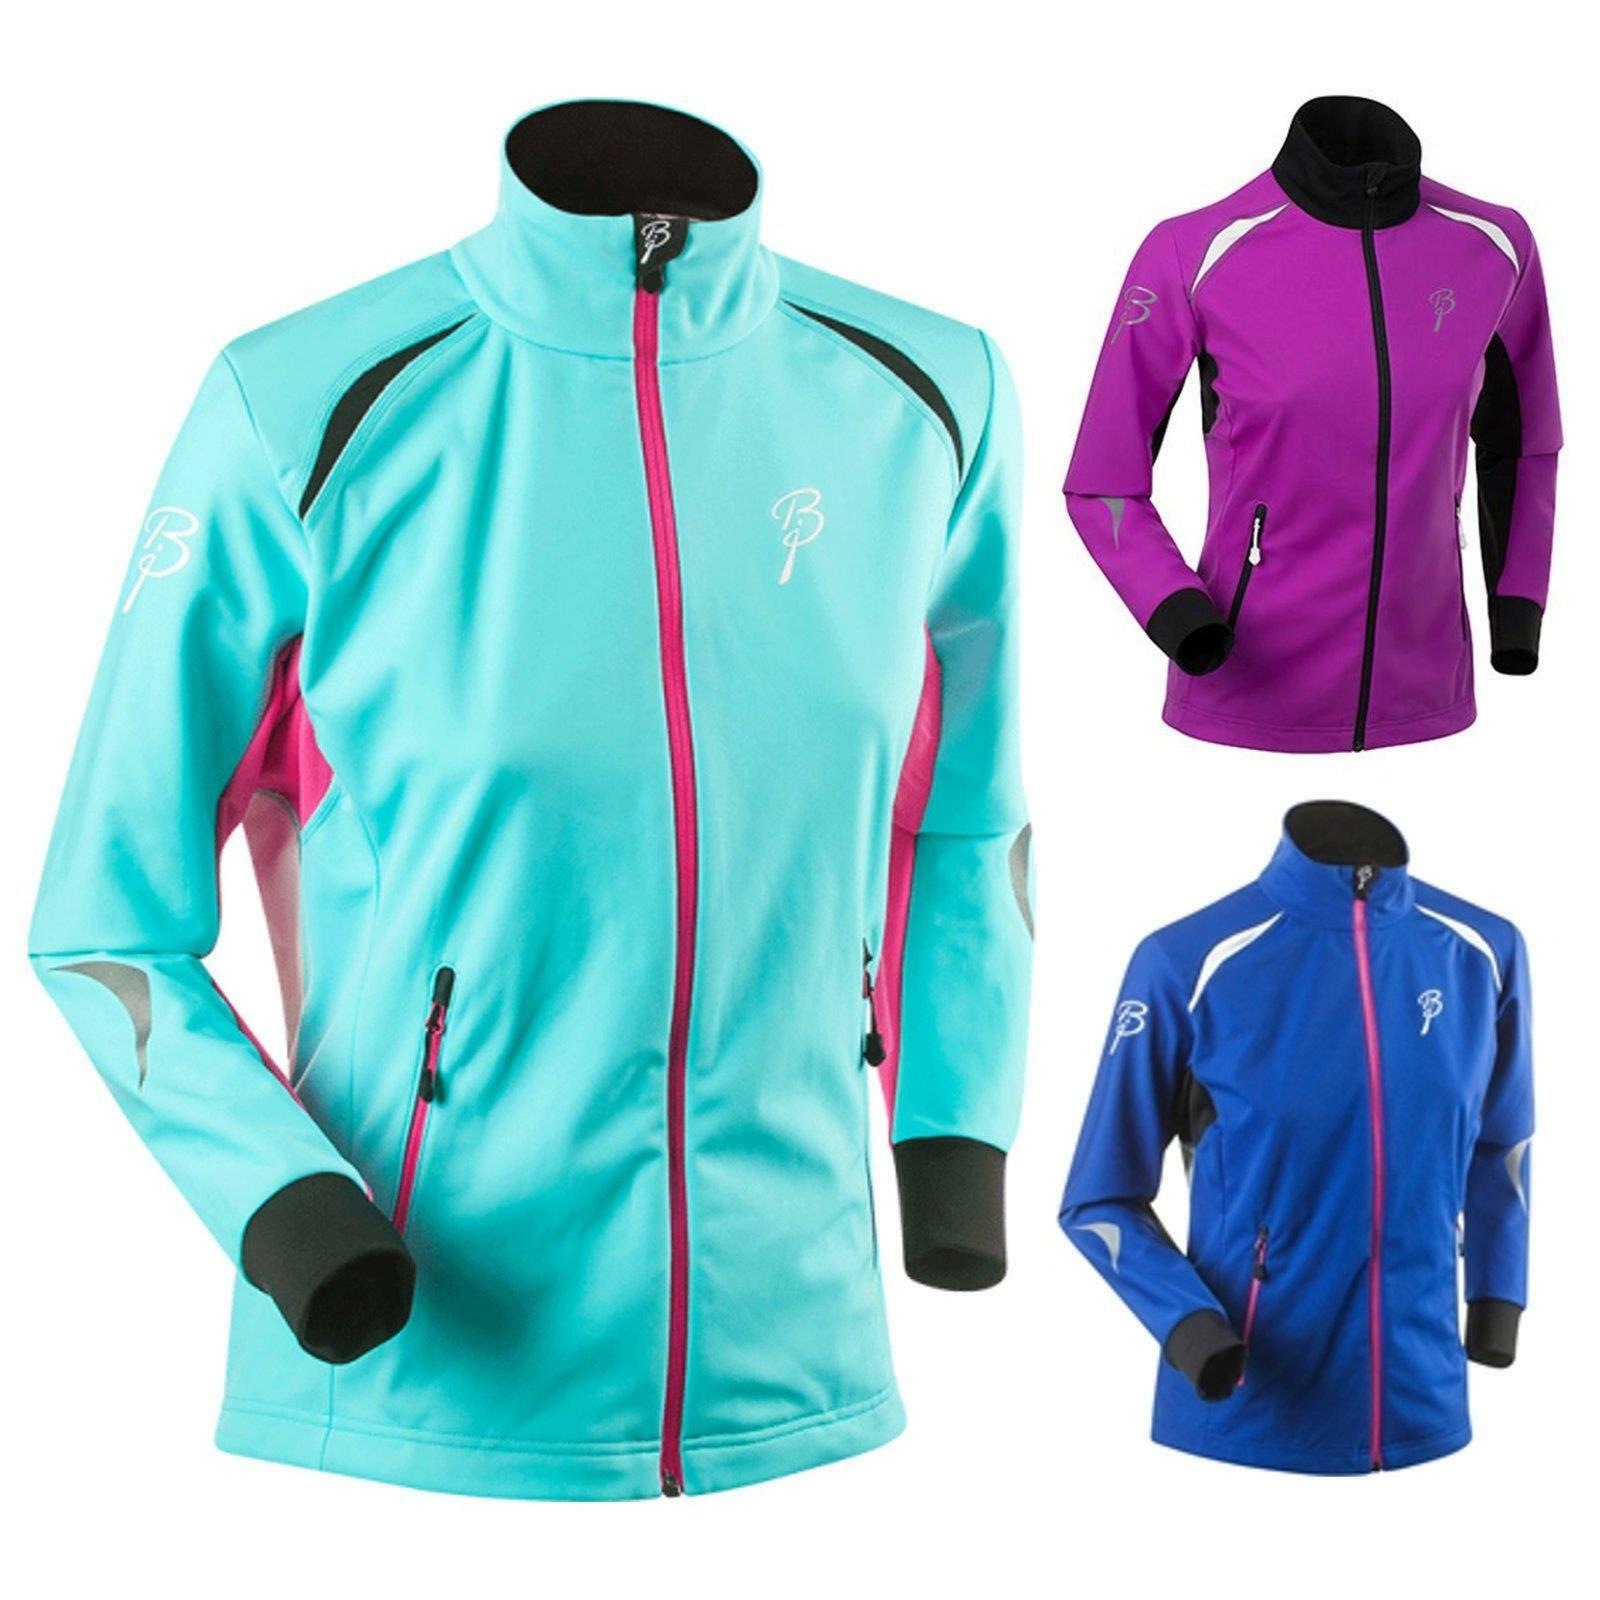 Björn Daehlie Pacer Donna Funzionale Giacca Softshell Sport Lungo Corsa Sci Outdoor